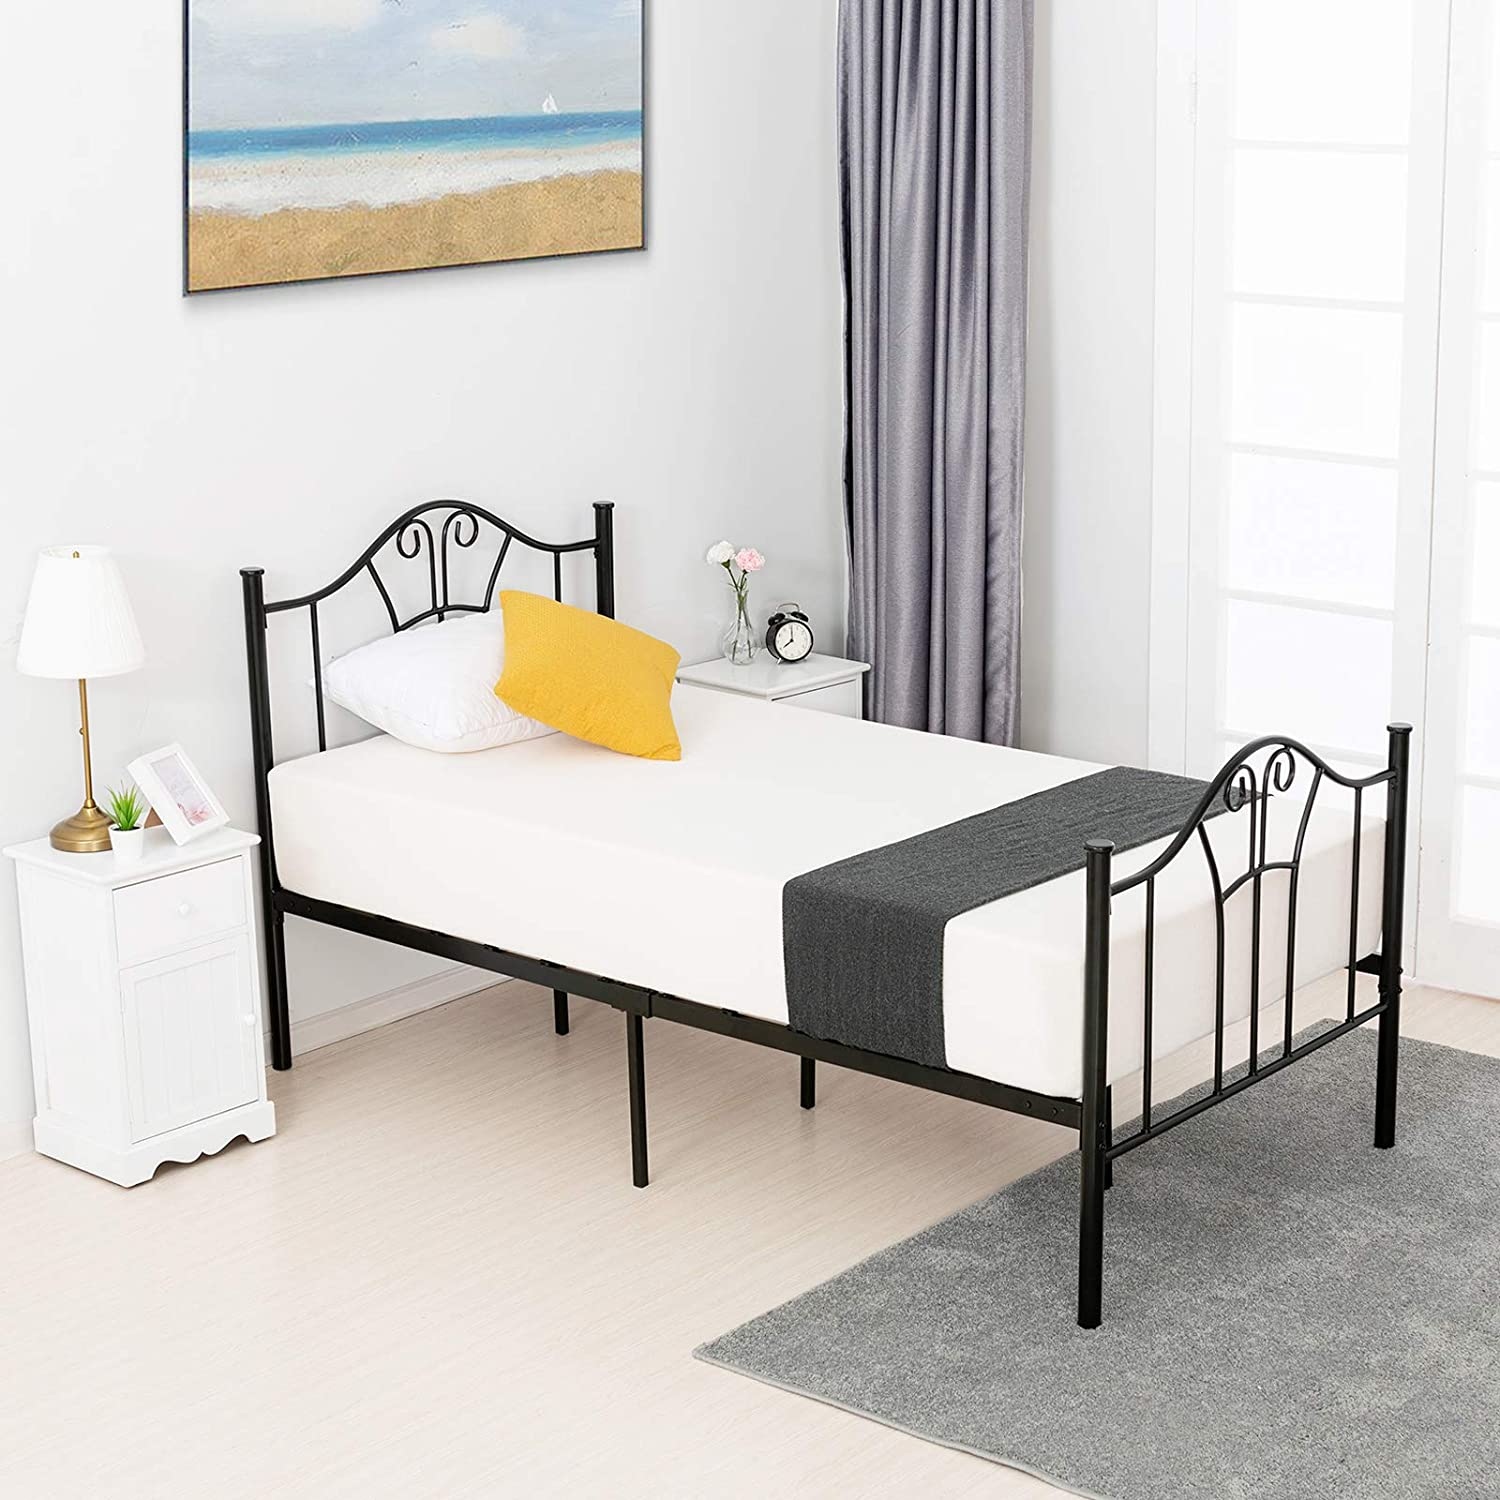 mecor Metal Twin Bed Frame, Platform Bed with Curved Steel Headboard Footboard, with Durable Metal Slat Support, No Box Spring Needed, Twin Size, Black